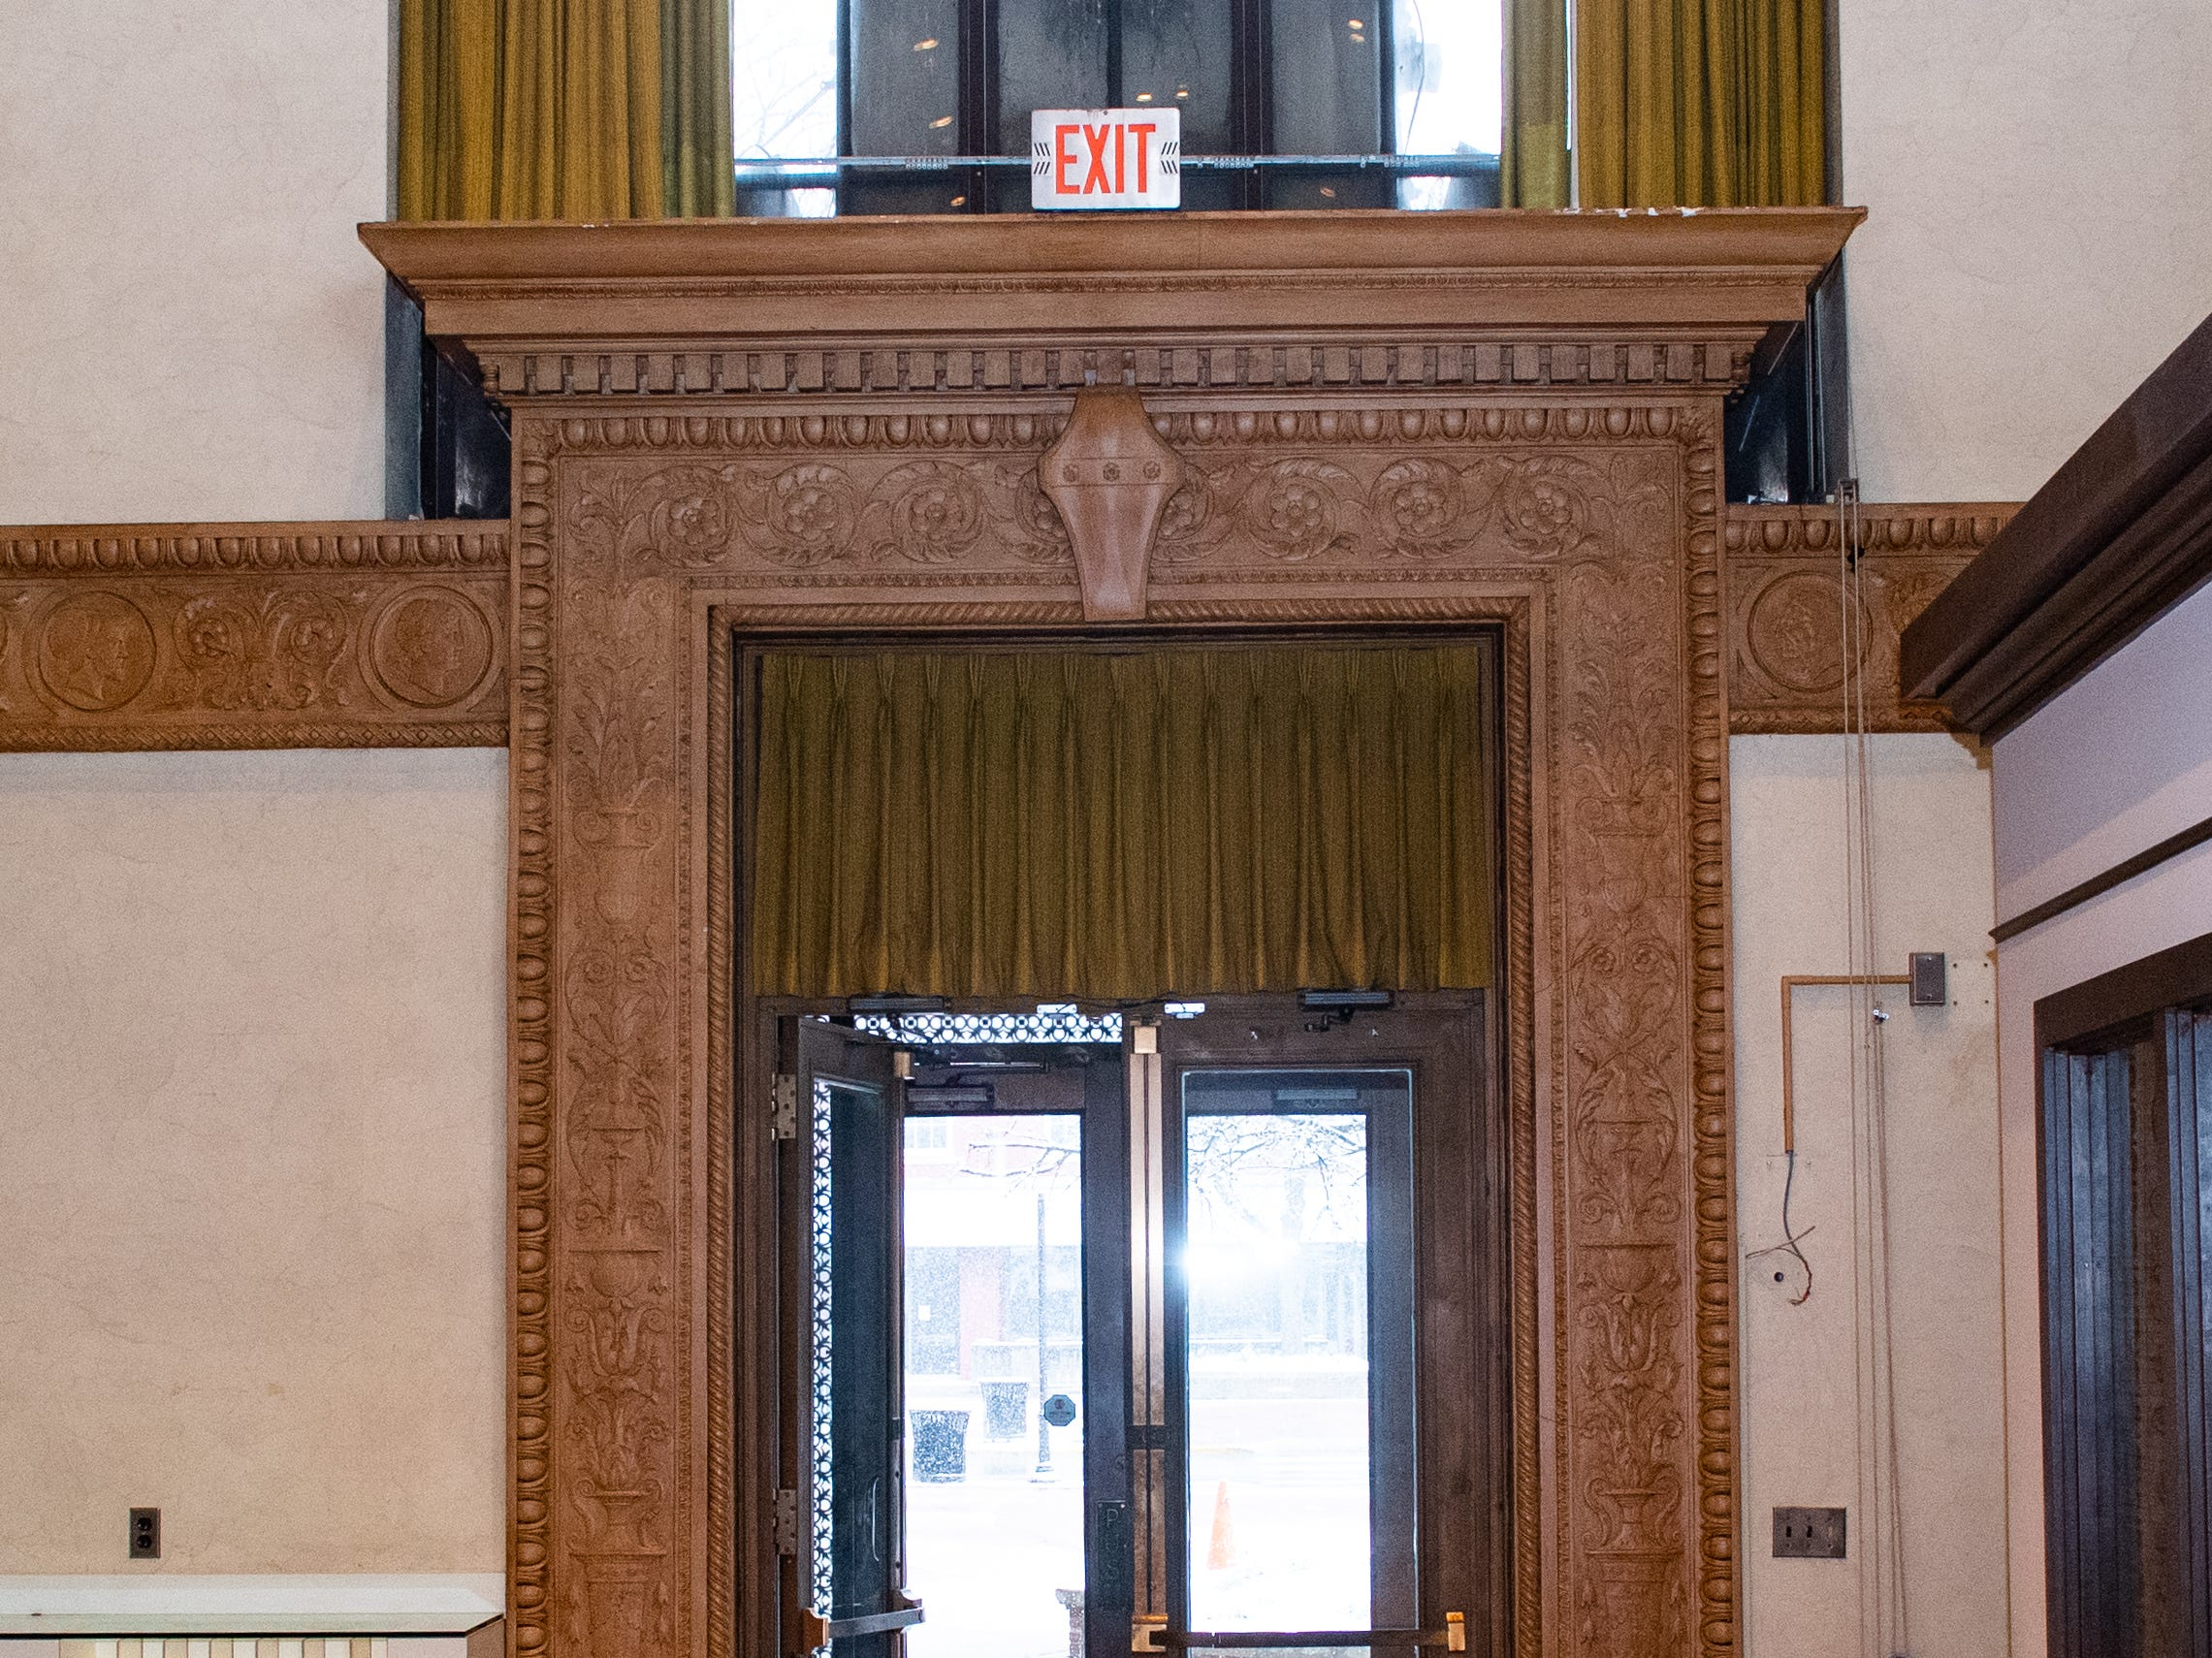 The front door will be refurbished as well, January 29, 2019.